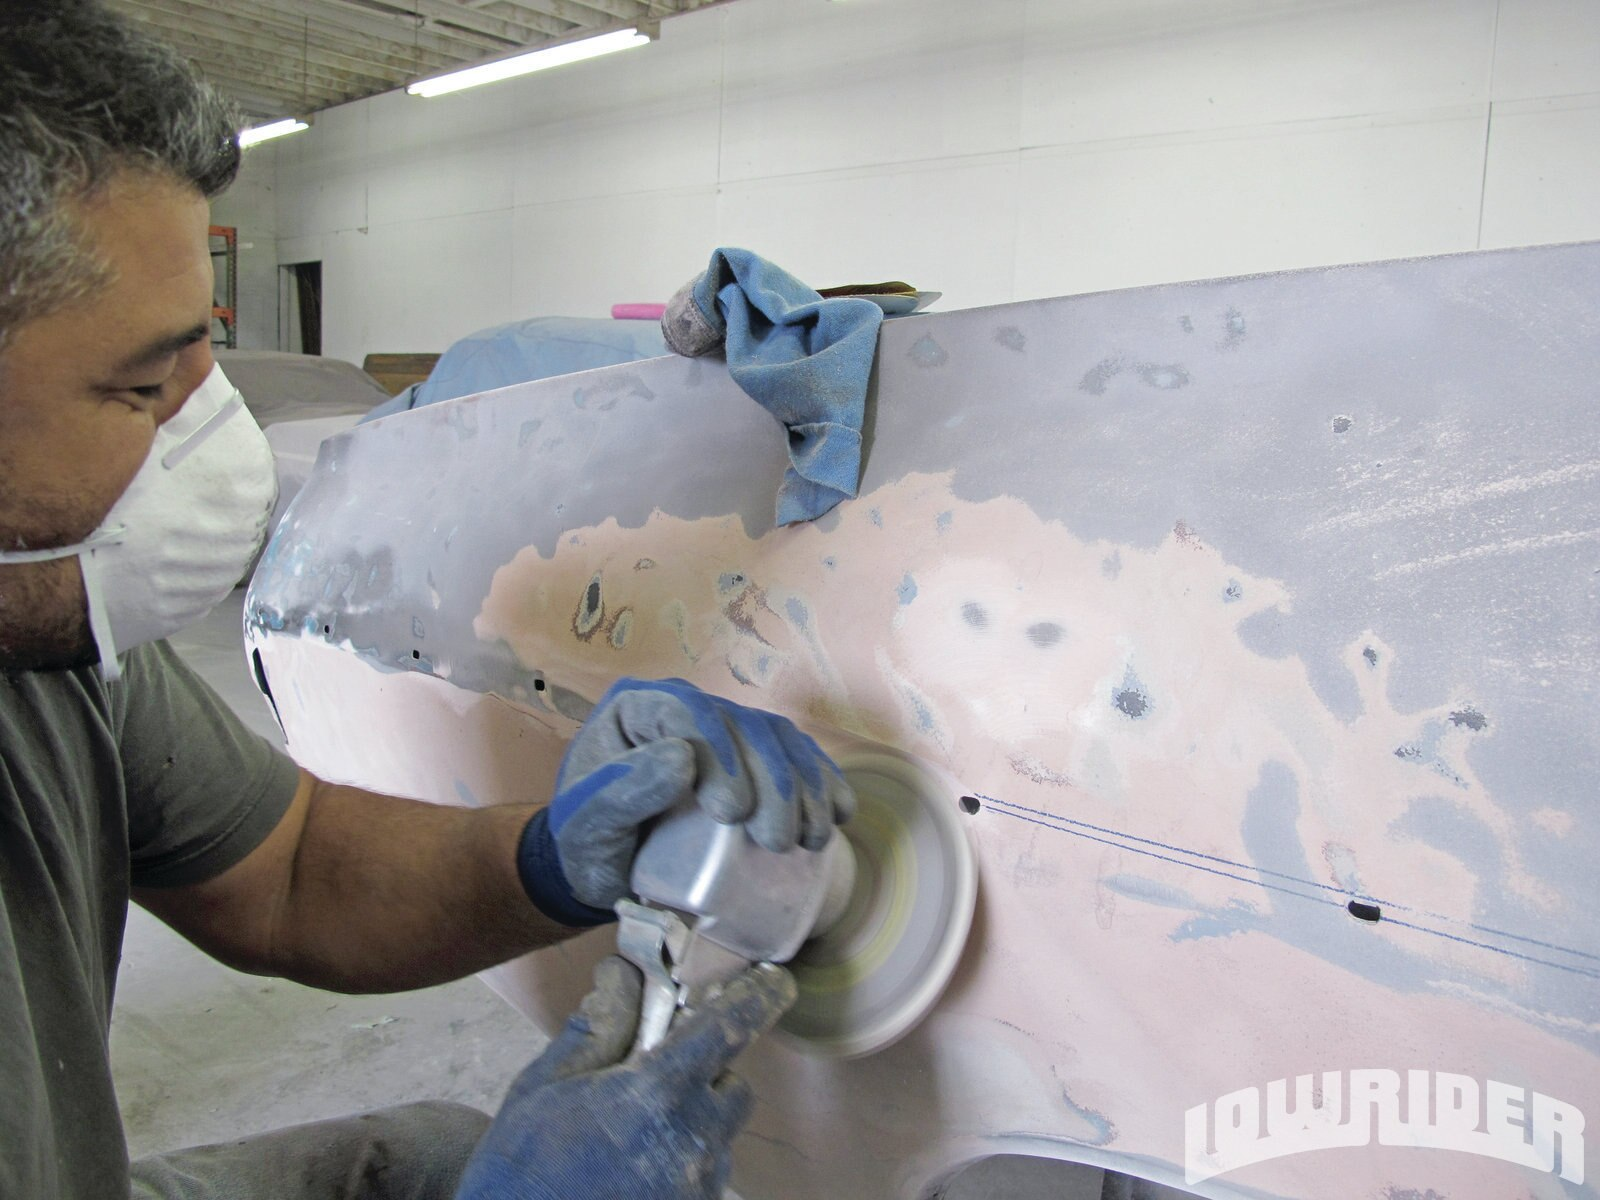 <strong>3</strong>. Using a sander, Luis started removing the bondo filler that was used at one point of the car's life.